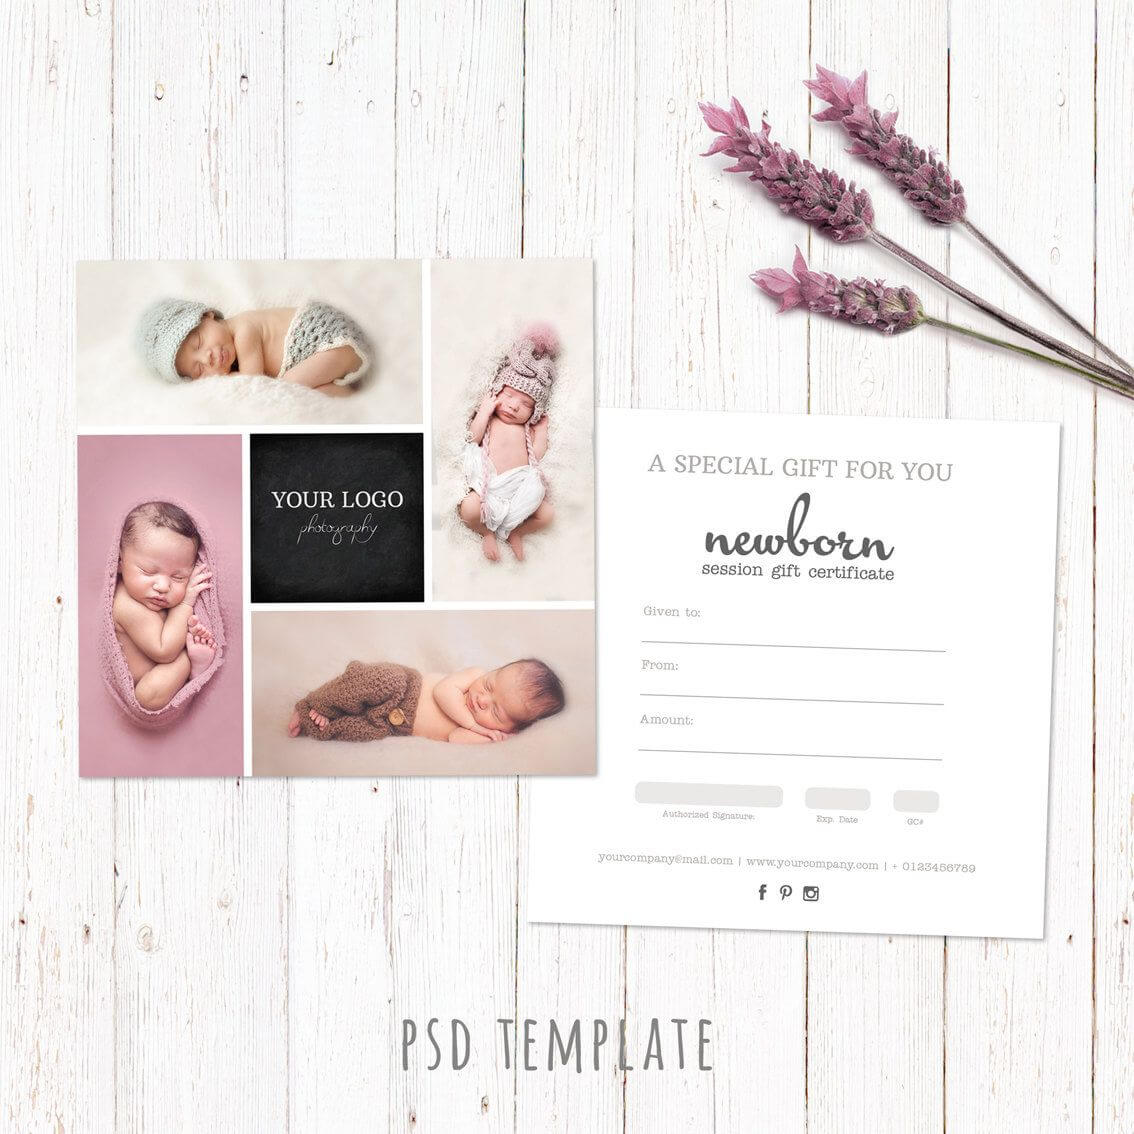 Gift Certificate Template. Newborn Session Photography Gift Throughout Photoshoot Gift Certificate Template